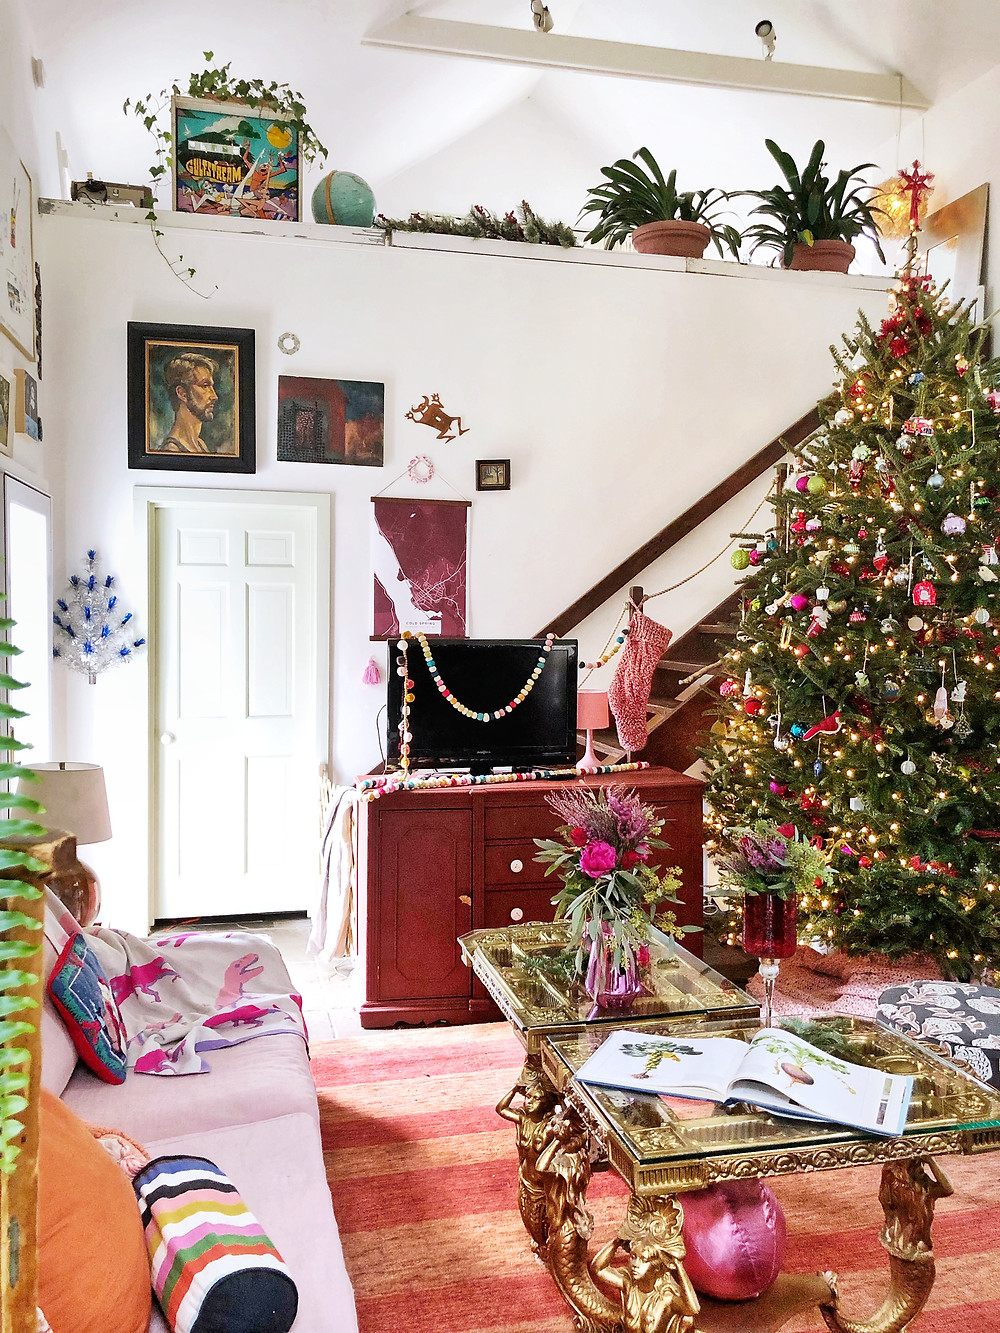 Christmas tree in loft home with gallery wall